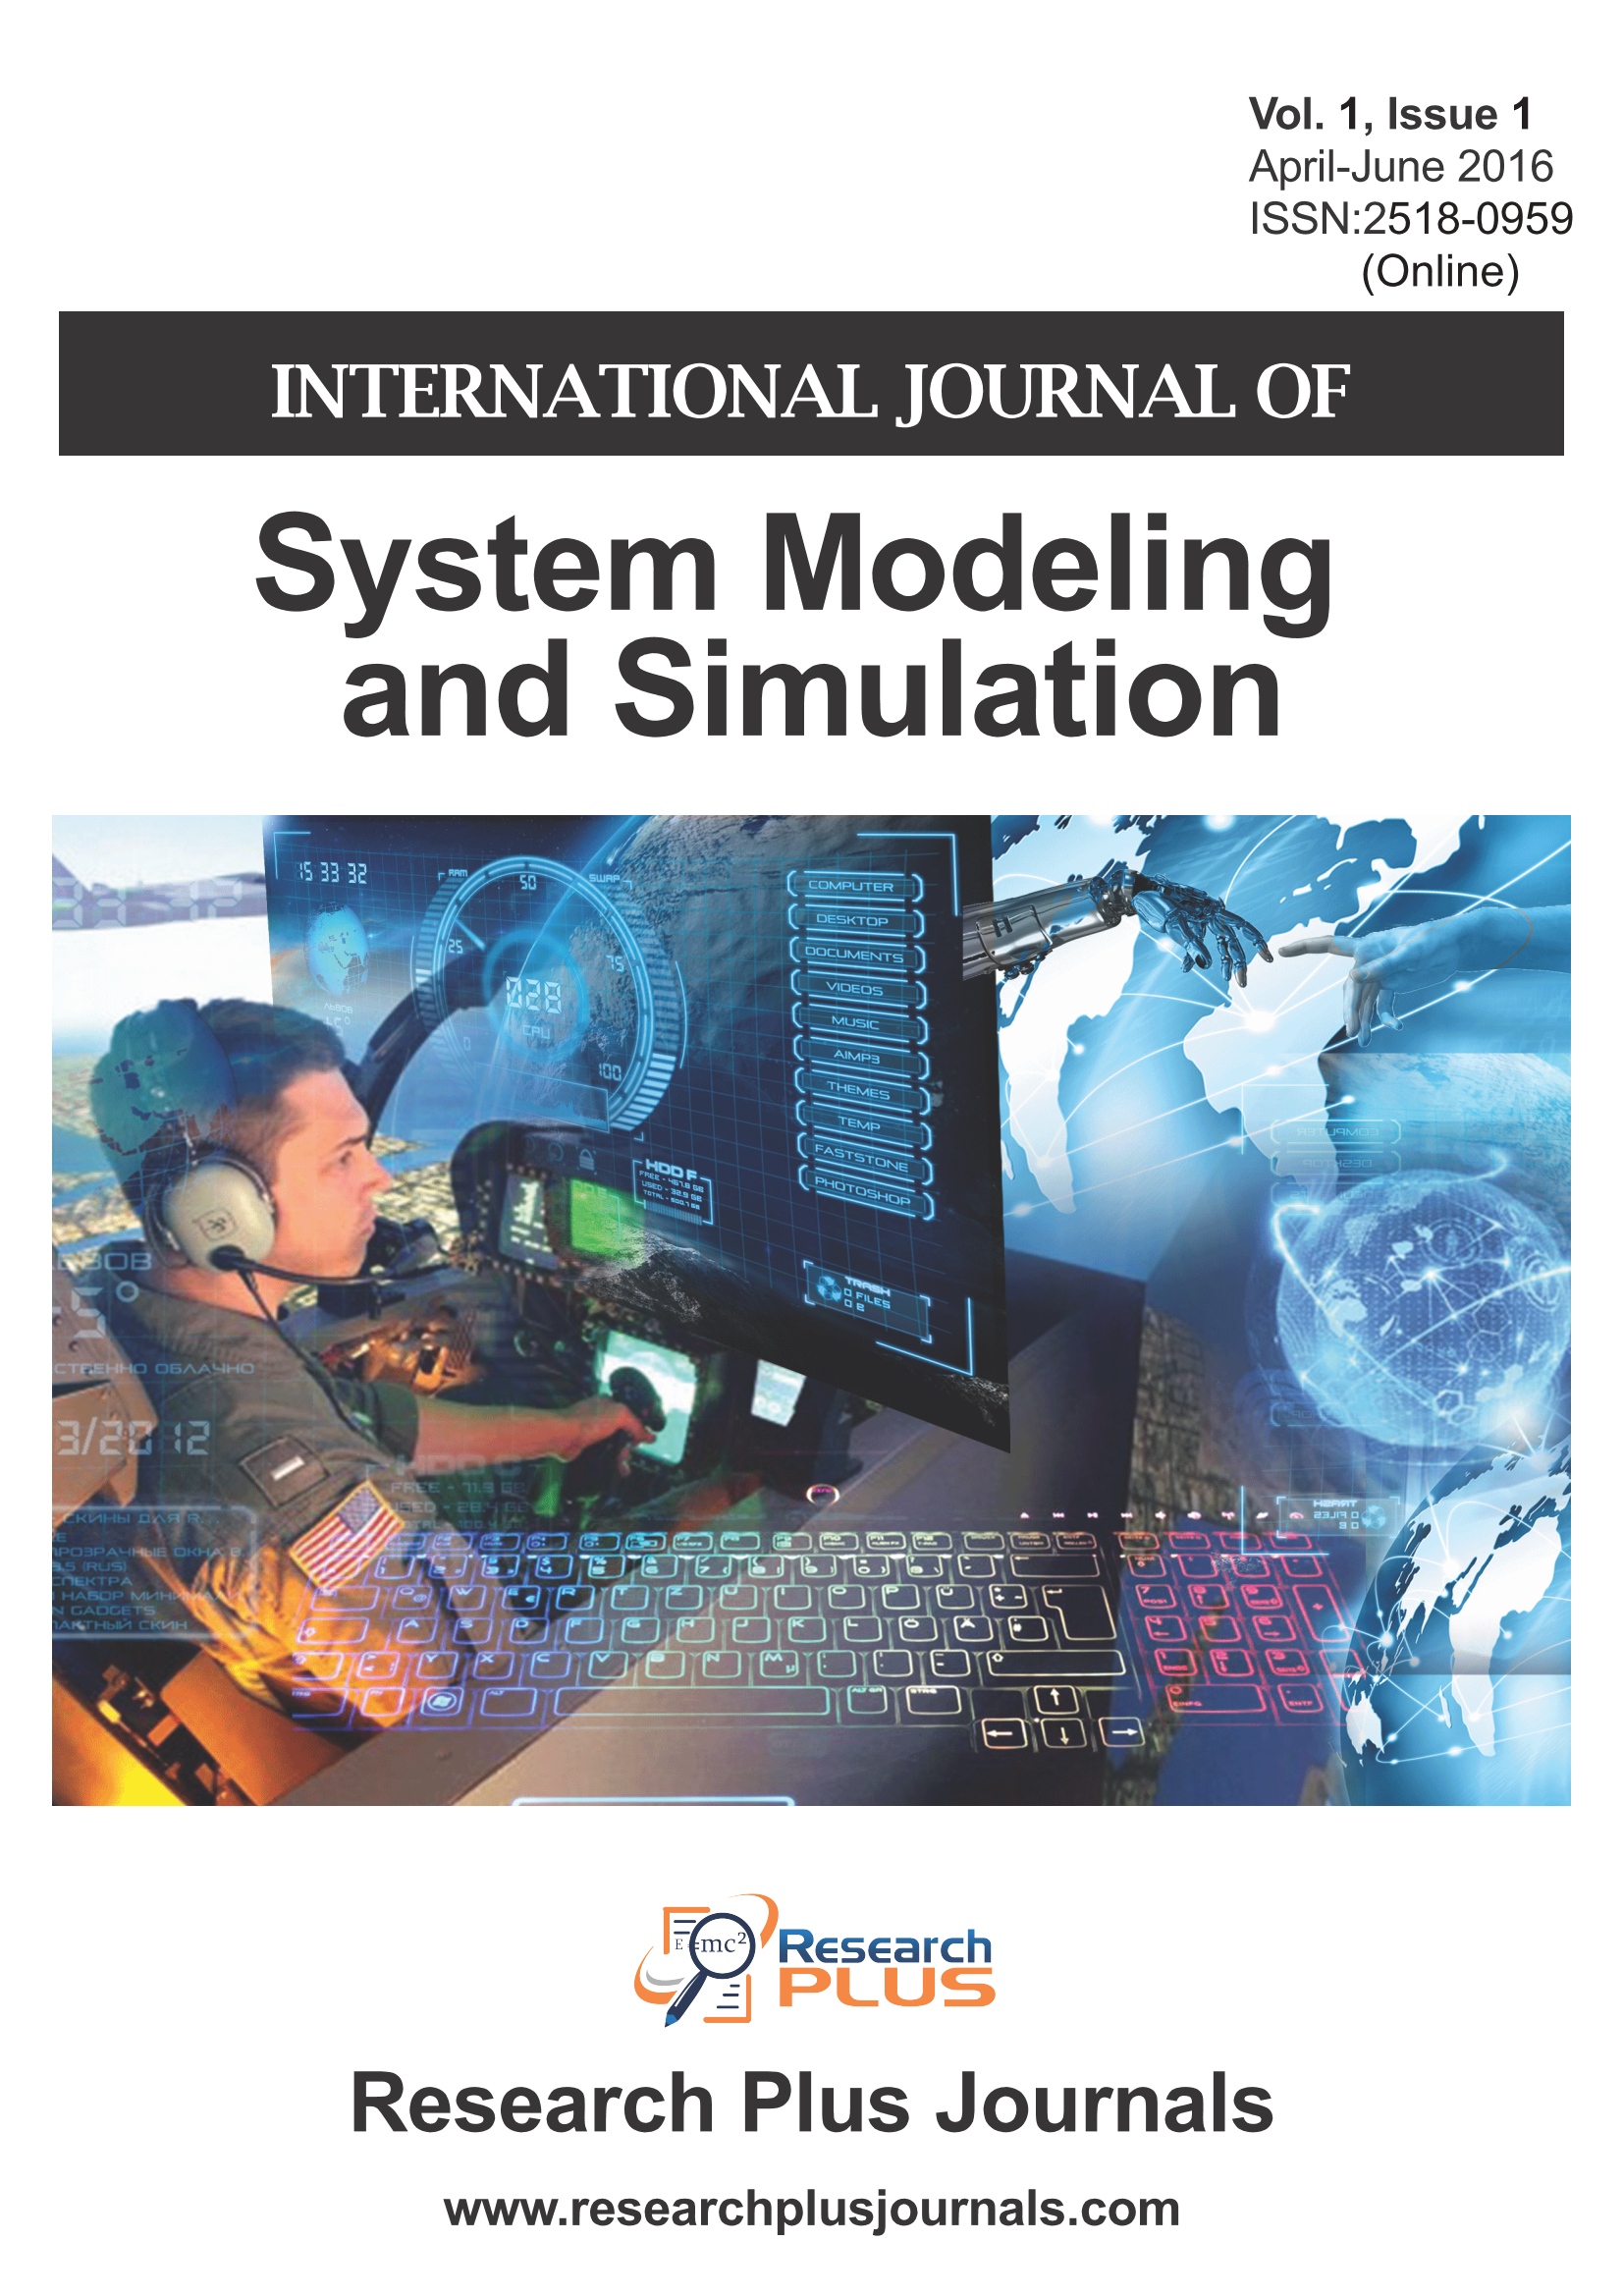 International Journal of System Modeling and Simulation (ISSN Online: 2518-0959)